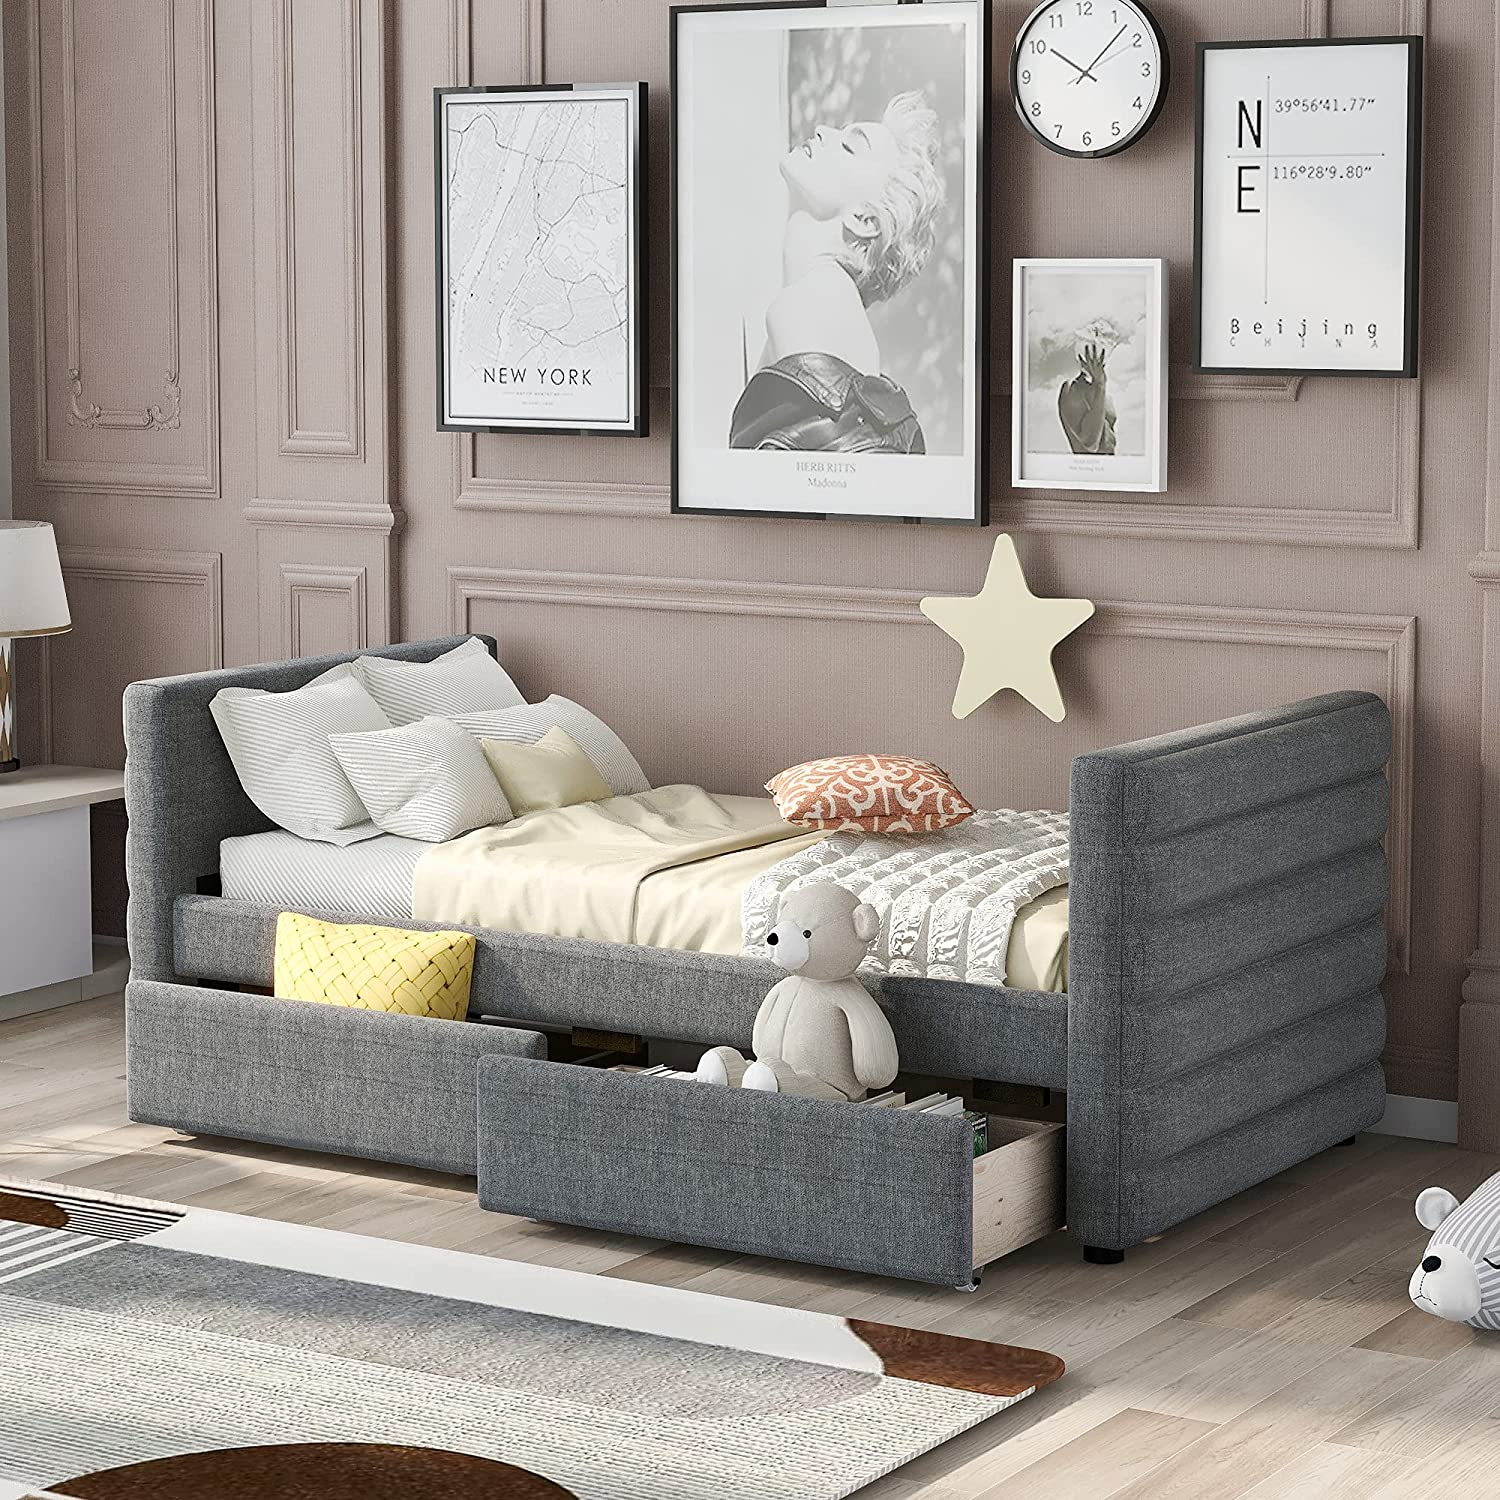 Knocbel Upholstered Twin Daybed with Platform Storage ! Super beauty product restock quality top! Limited time trial price Drawers B